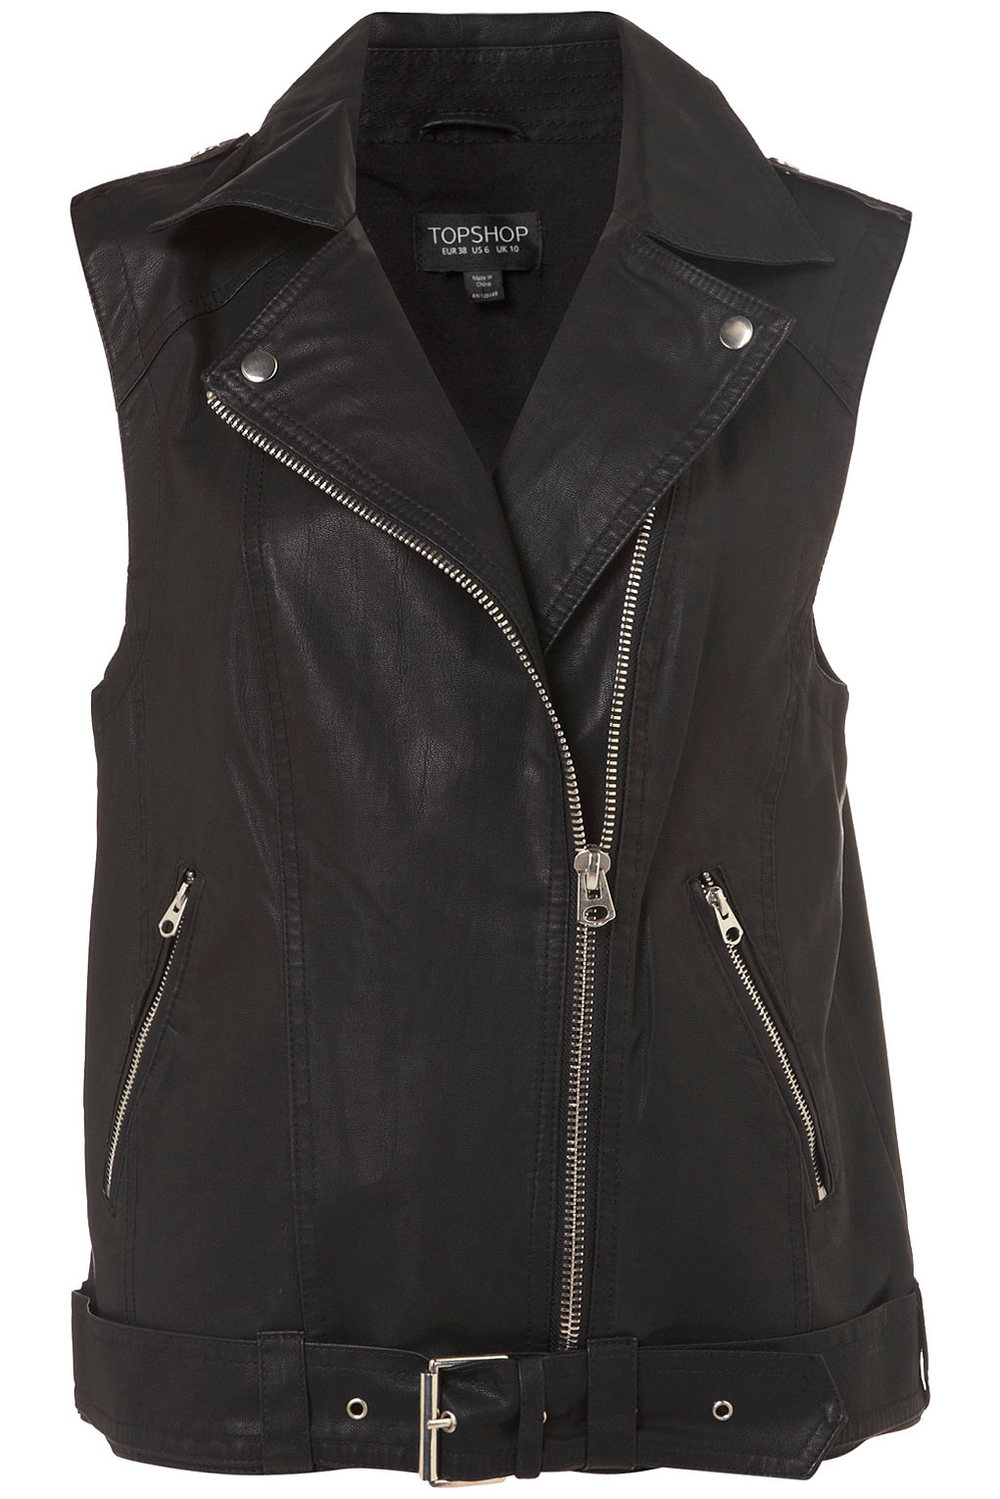 Over sized Sleeveless Biker Jacket Price: $96.00Topshop.com